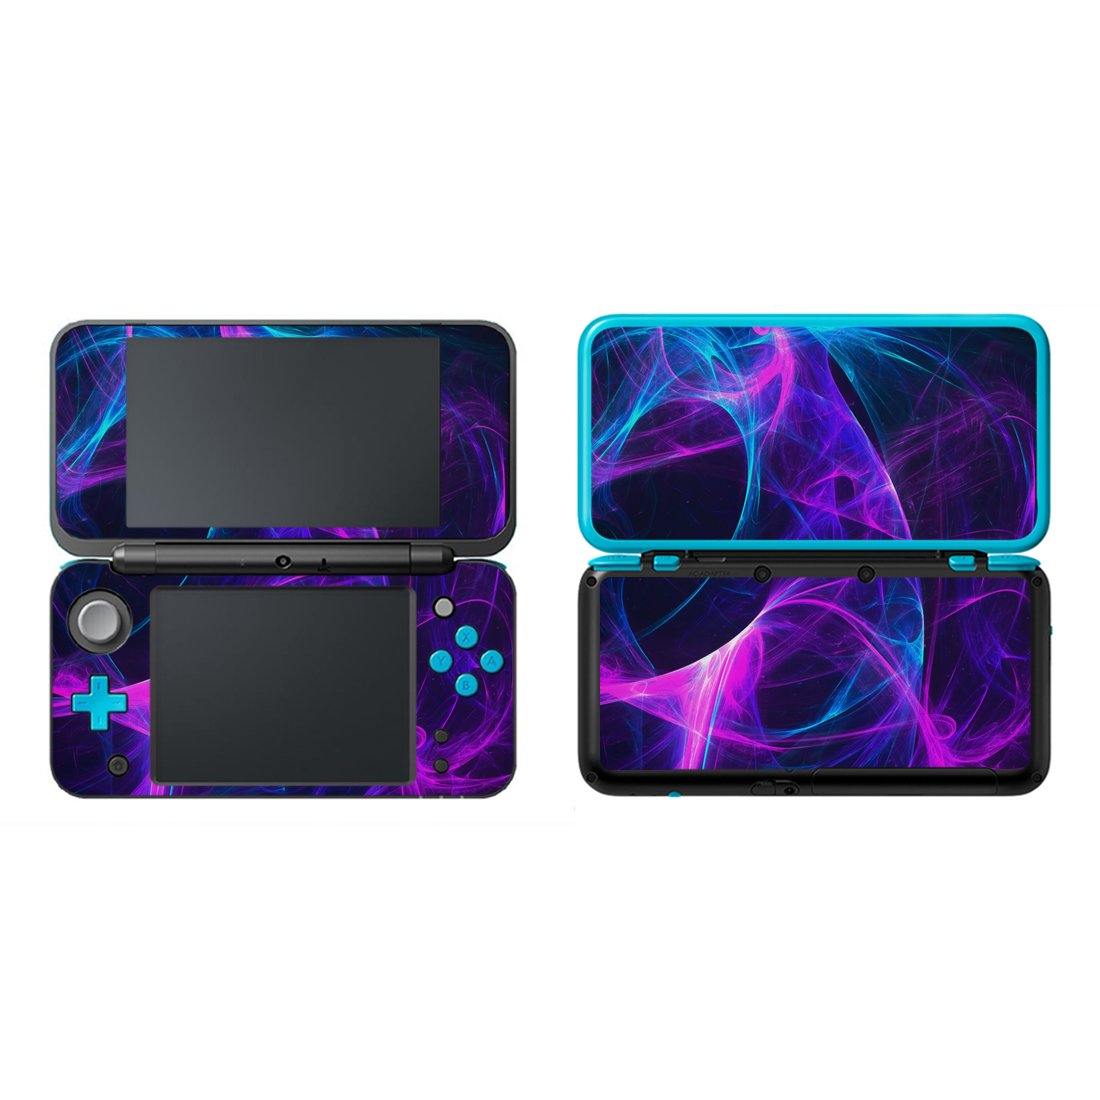 FOTTCZ Vinyl Cover Decals Skin Sticker for New Nintendo 2DS XL/LL - Bright Ray